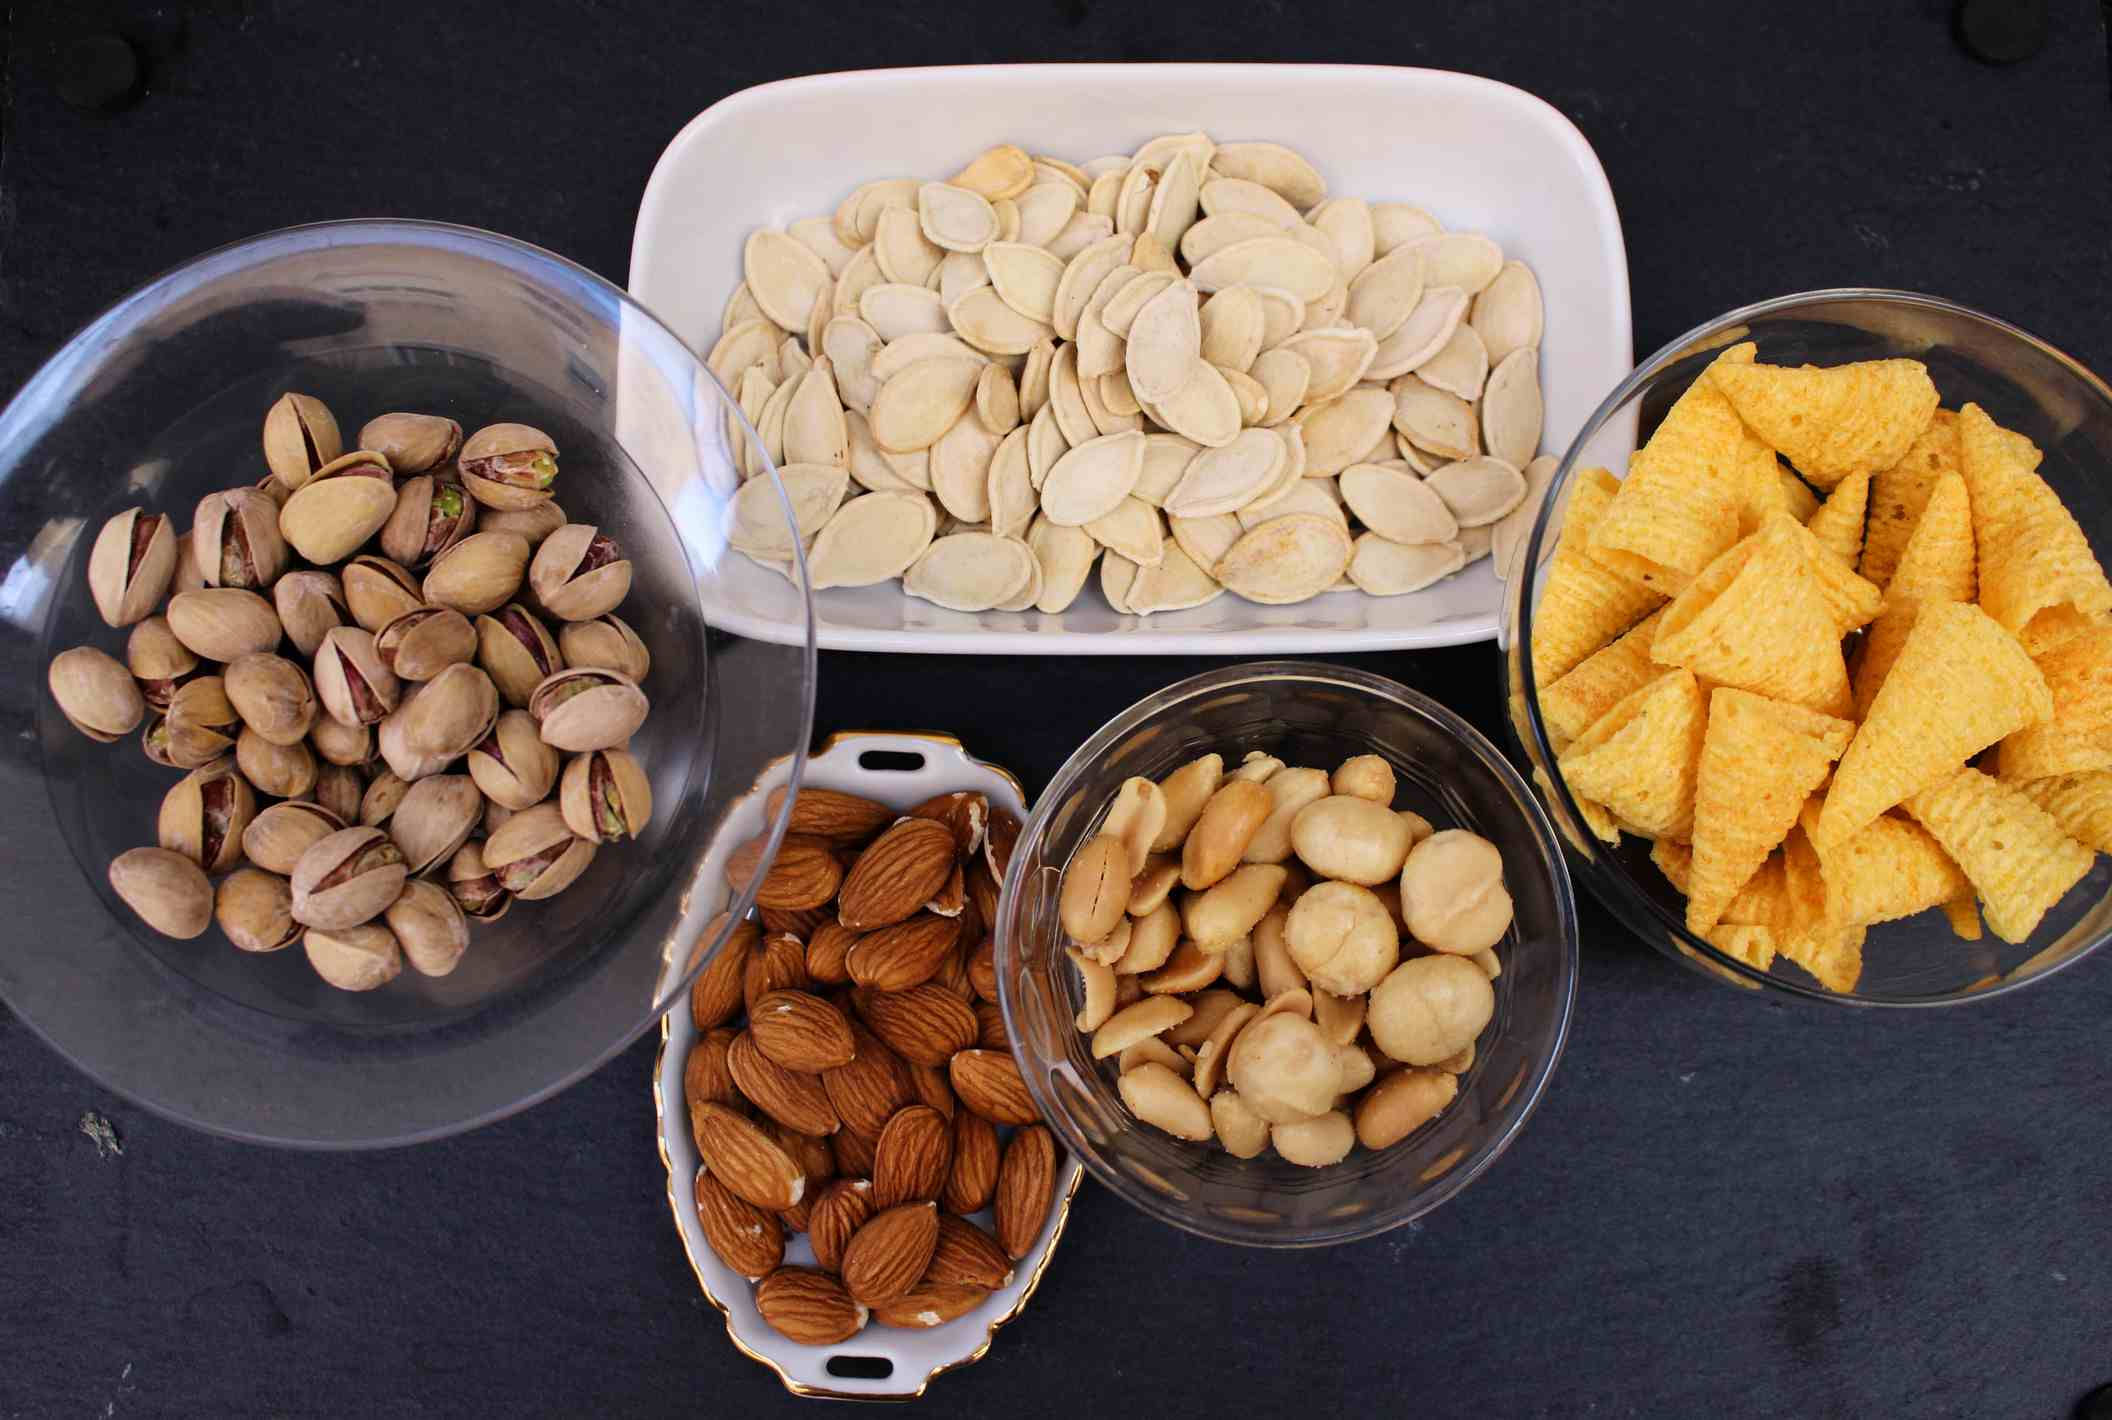 seeds, nuts and chips in small bowls